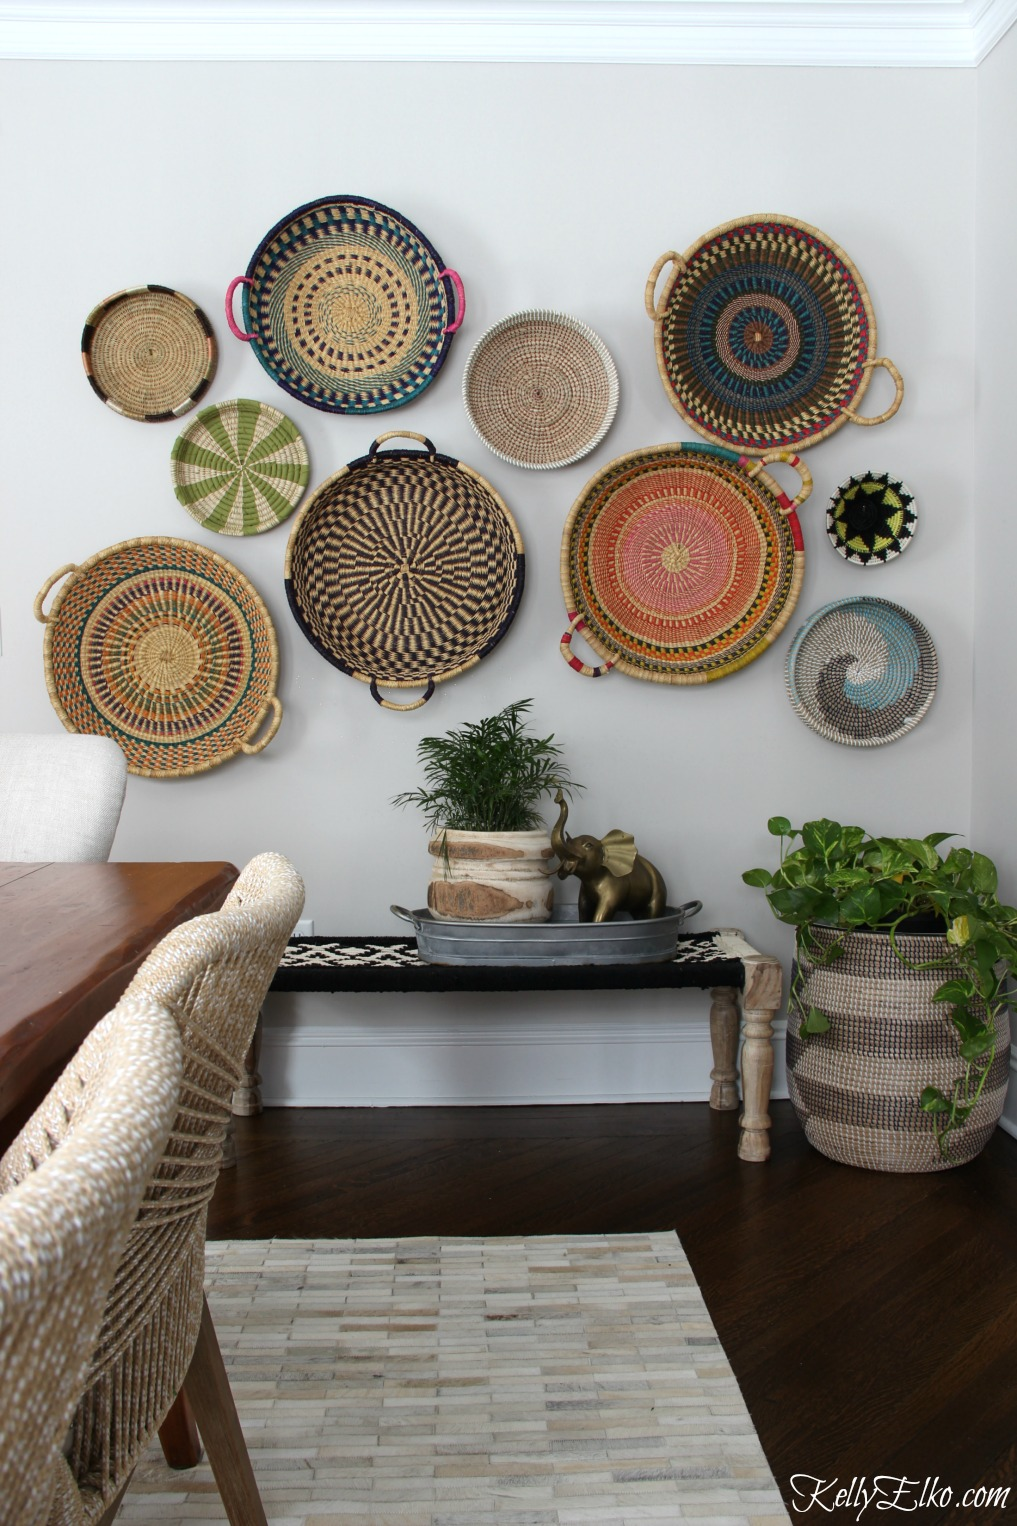 DIY Boho Craft Projects Boho Decor Basket Gallery Wall